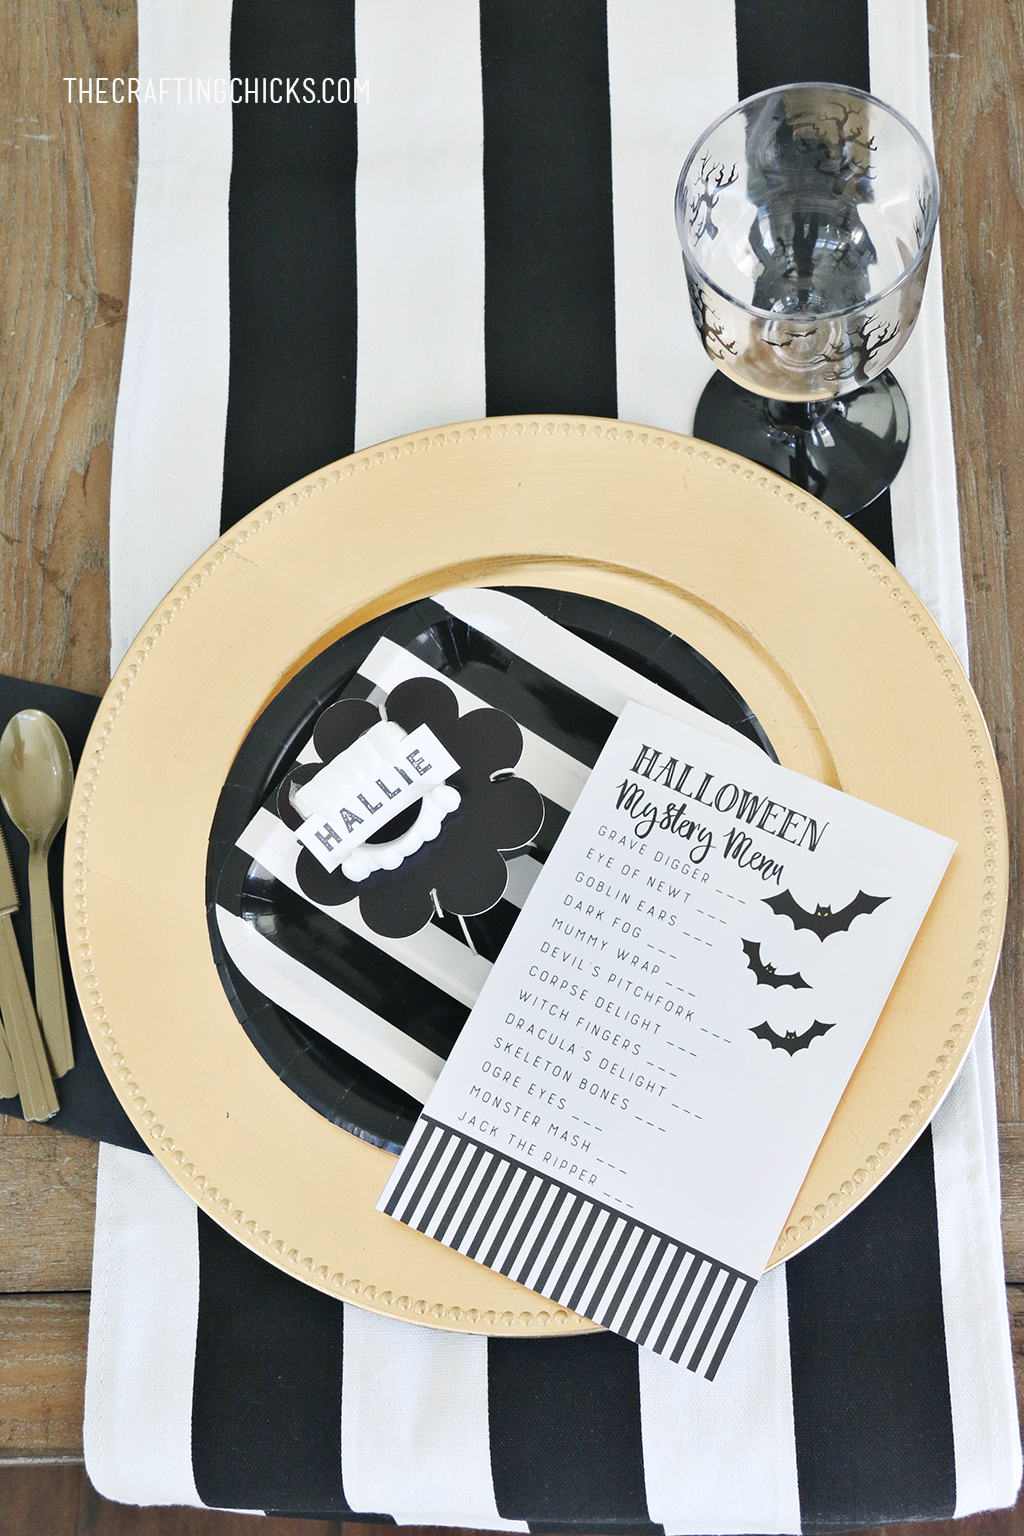 Halloween Mystery Dinner Party Free Menu for a Mystery Halloween Dinner